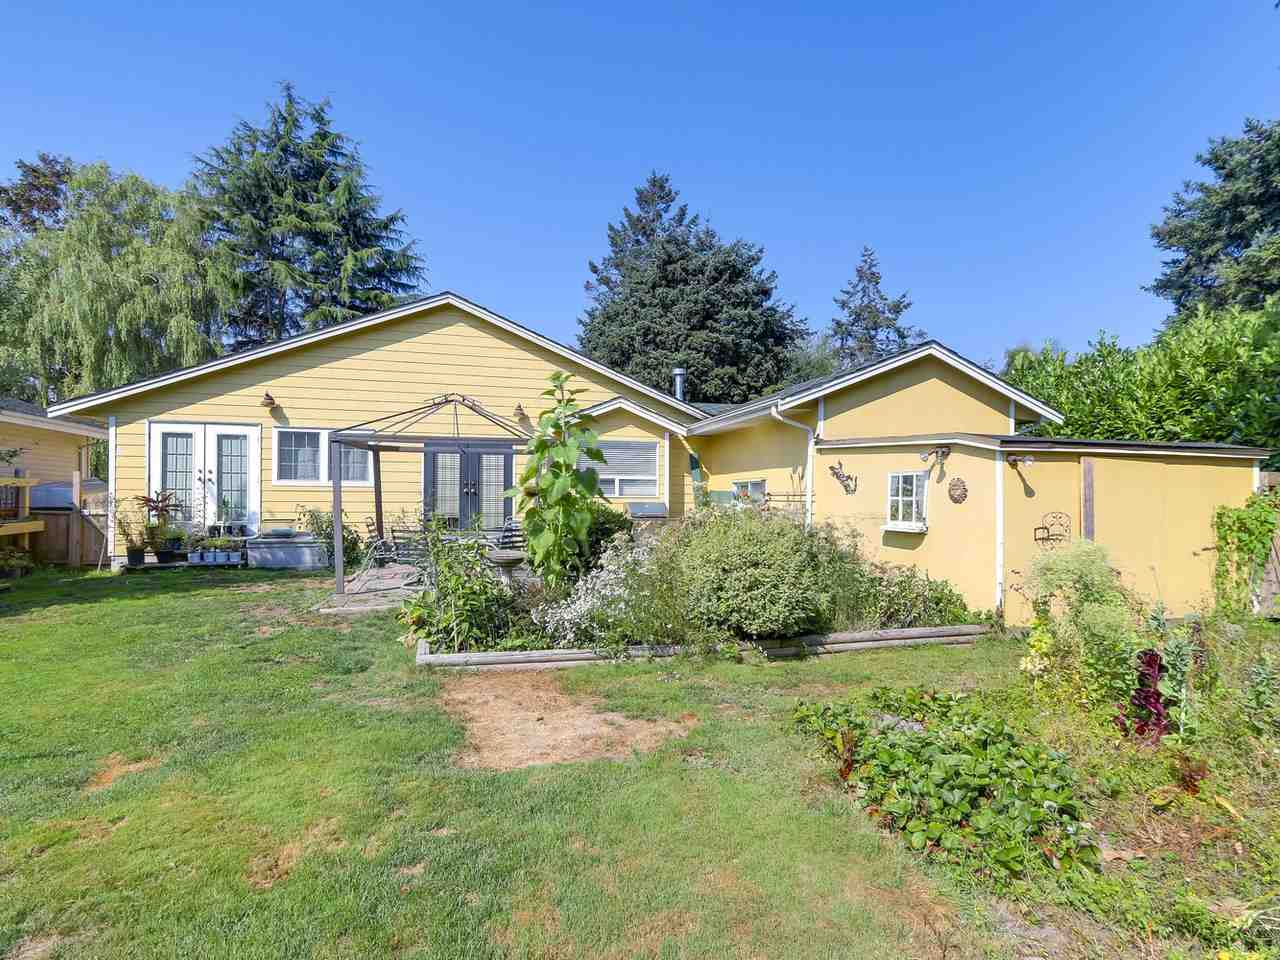 Well kept 3 bedroom 2 bathroom home with a open kitchen, separate dining room and bright family room. Master bedroom features lovely french doors to the back yard and an ensuite. This home is on a beautiful 10,680 sq.ft. lot (60 x 178 feet). Build a new home - up to 4,280 sq.ft. with a 452 sq.ft. garage OR a 3,400 sq.ft. home with a 880 sq.ft. workshop. Close to schools, parks, Ladner Village shopping and restaurants. Potential to subdivide, hold as an investment OR move in and enjoy!